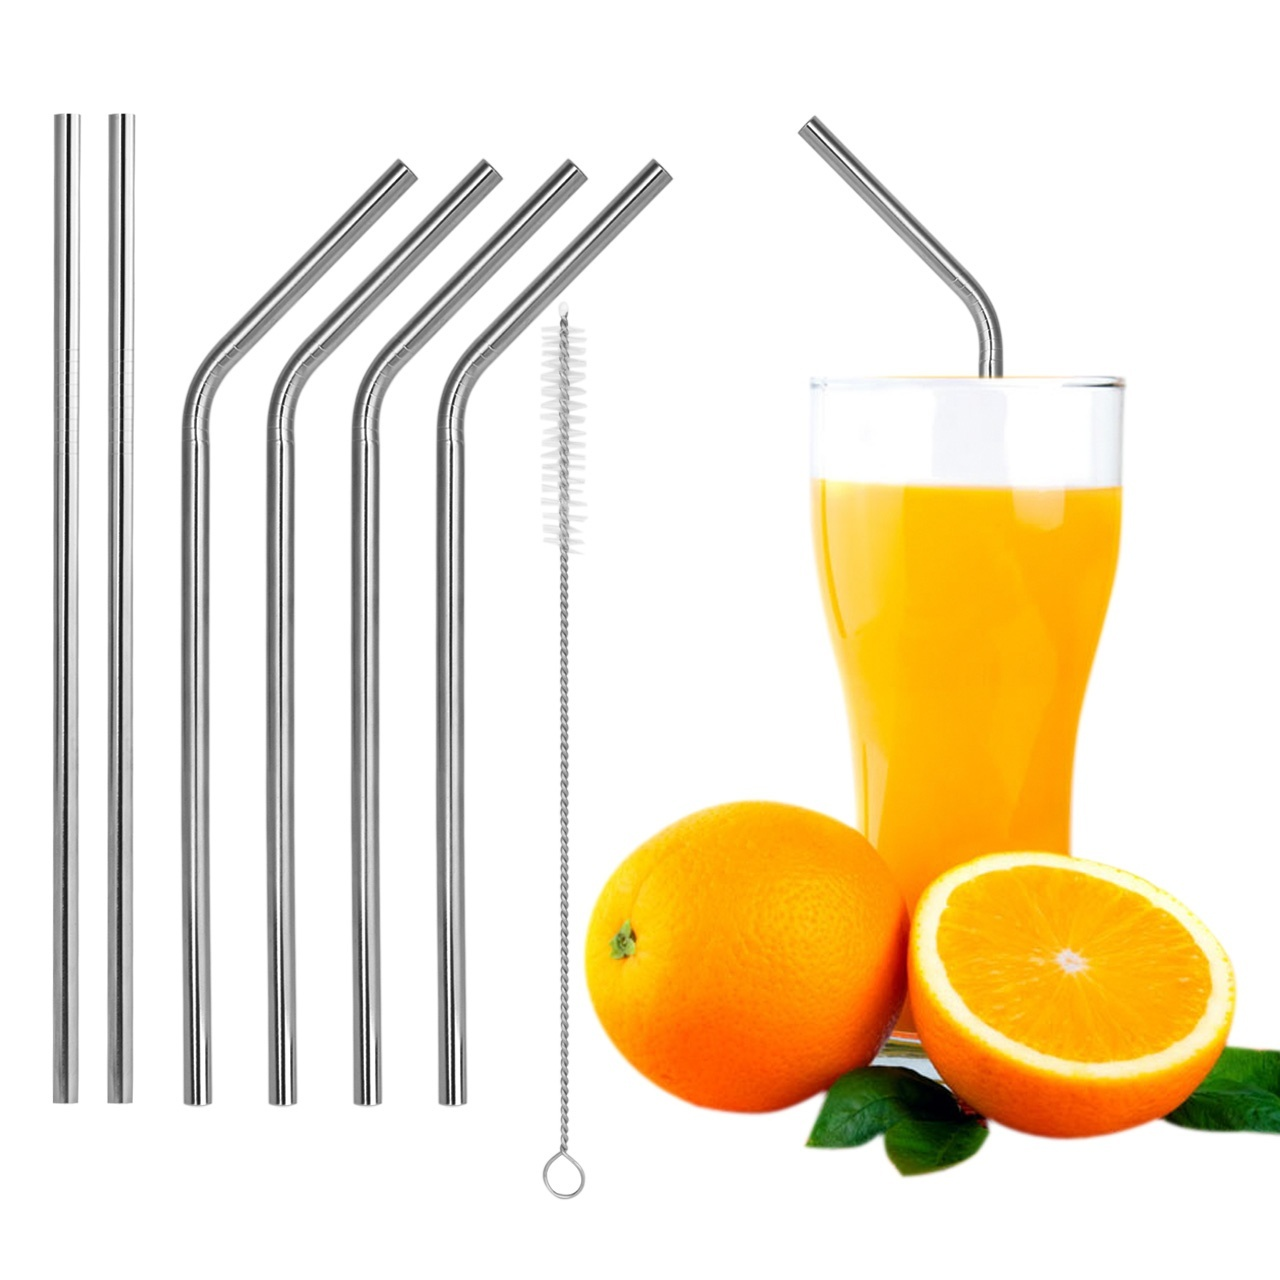 <font><b>6</b></font> Pcs Straight/ Bent <font><b>Stainless</b></font> Steel Drinking Straws For <font><b>Yeti</b></font> 30oz <font><b>Tumbler</b></font> With 1 Pc Cleaning Cleaner Brush